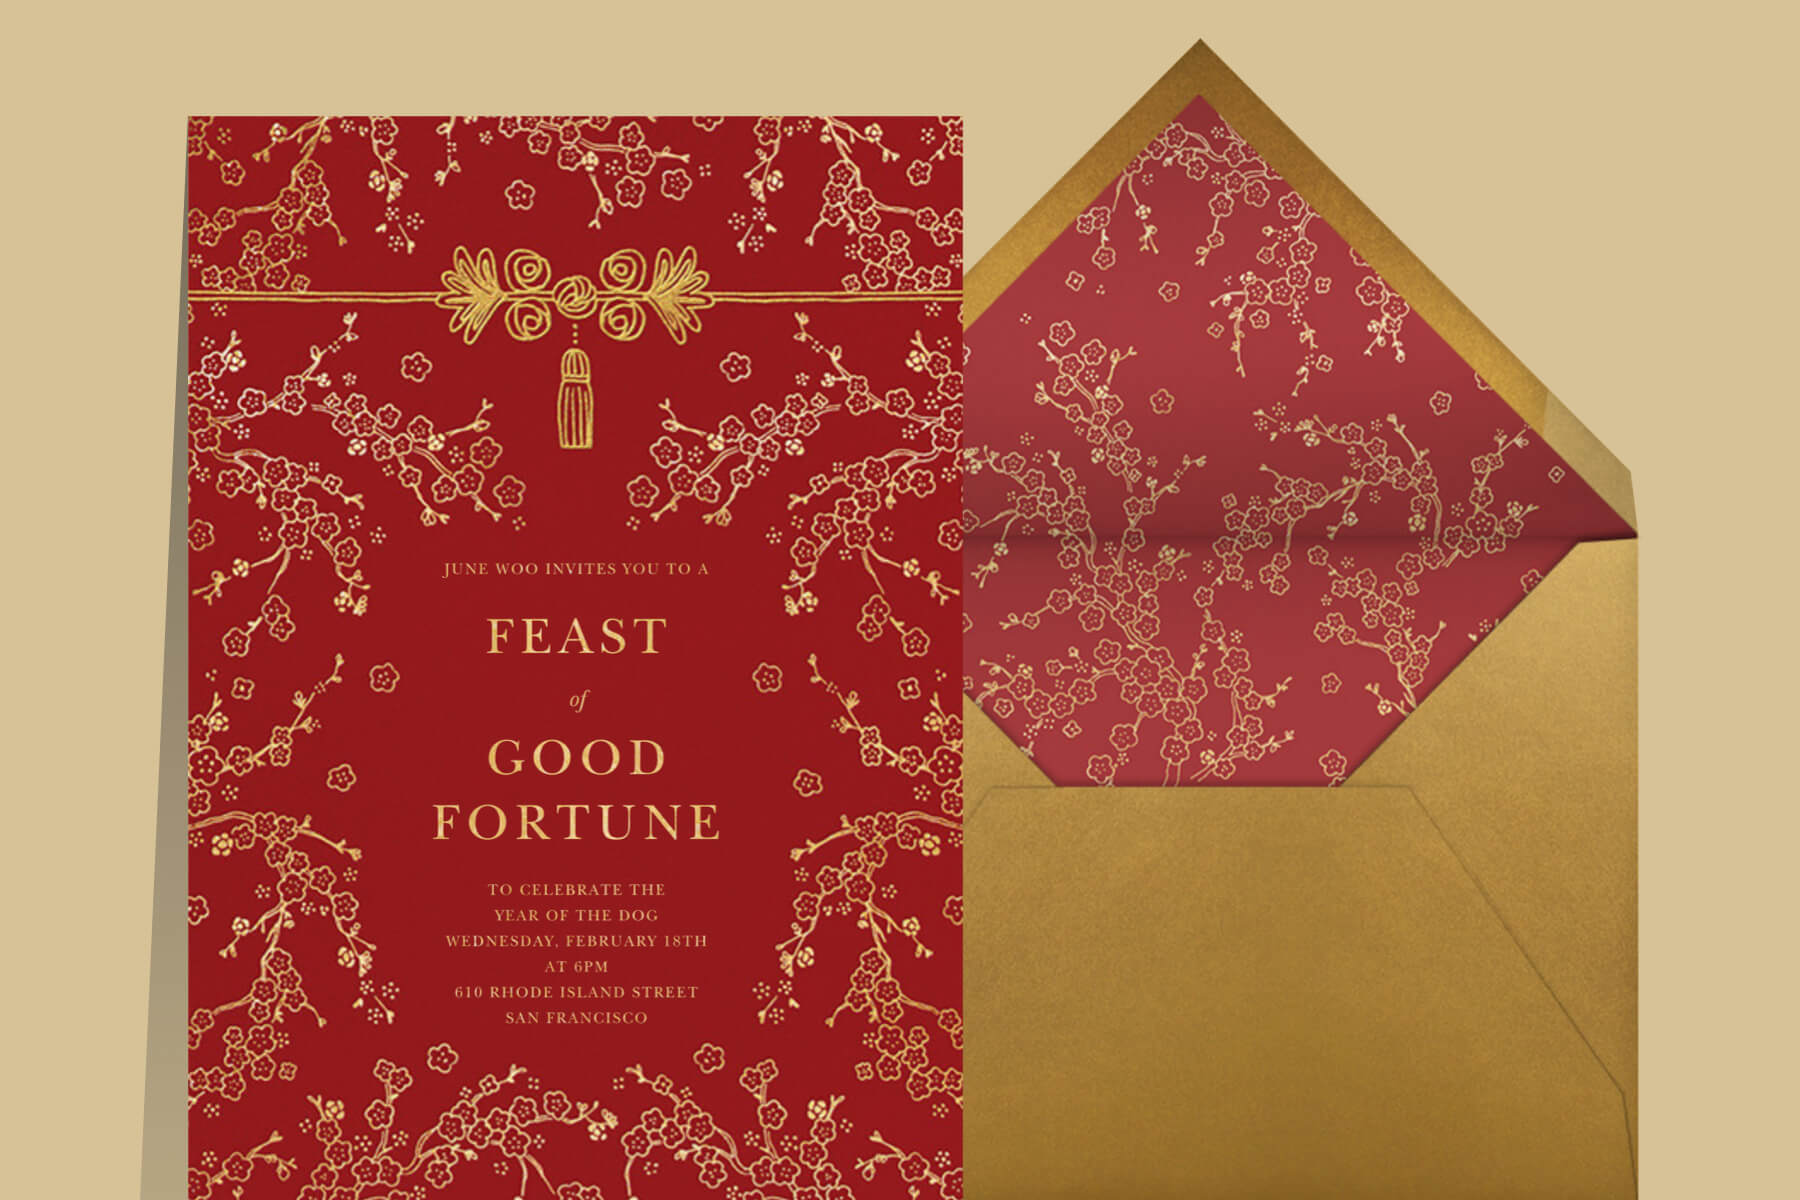 Lunar New Year invitation wording ideas from Paperless Post with a red card covered in gold branches reading feast of good fortune